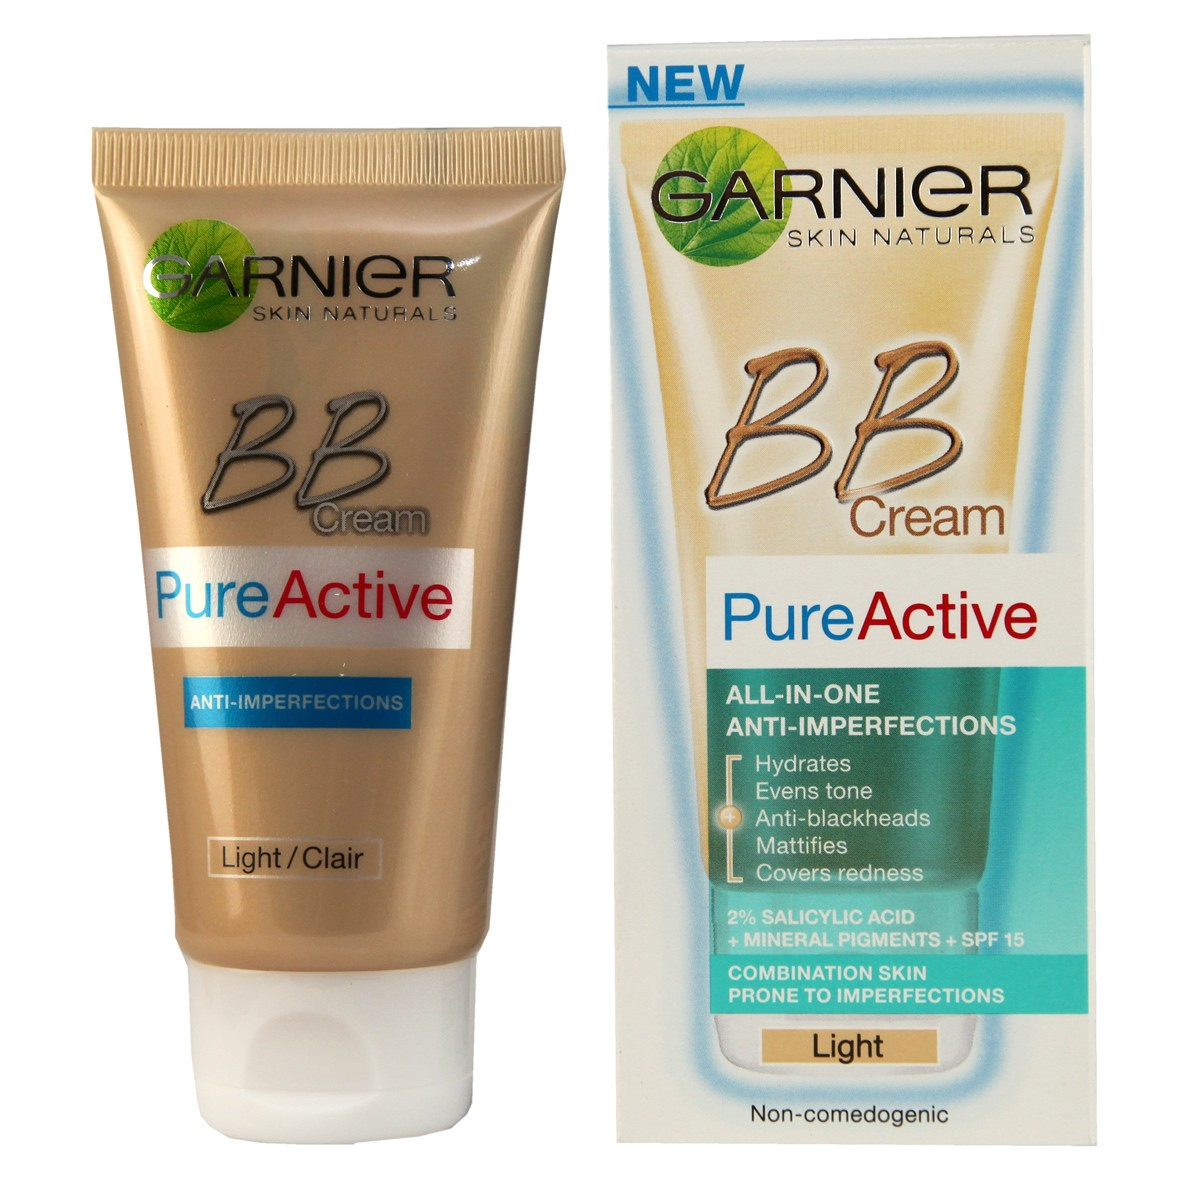 Garnier Pure Active BB Cream All-In-One Anti-imperfections Light